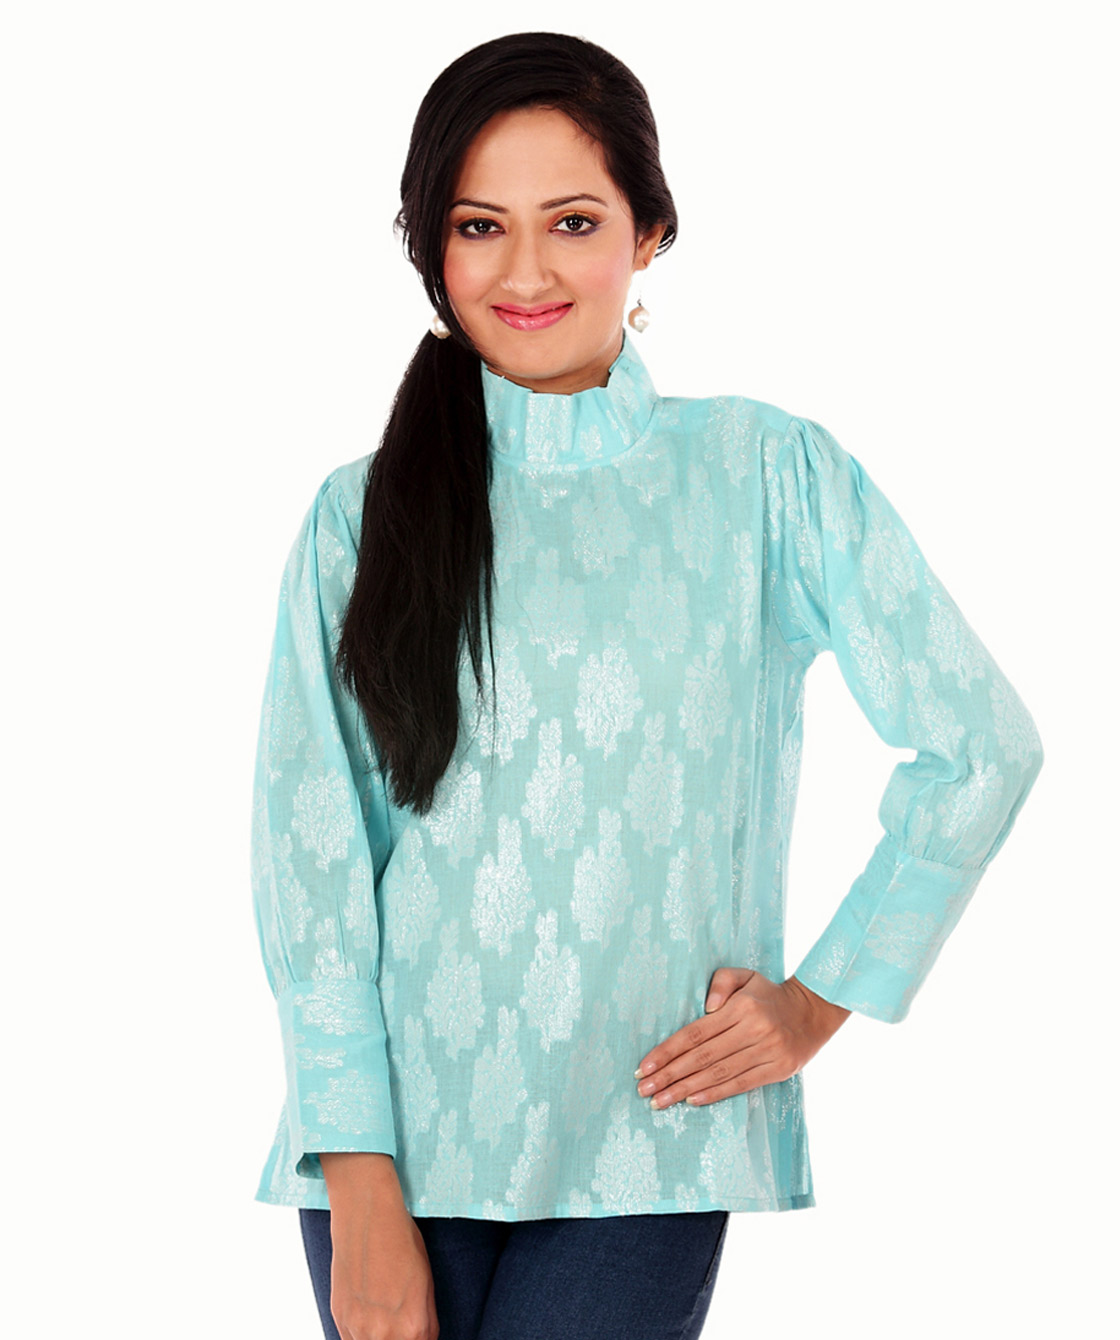 brocade cotton formal top